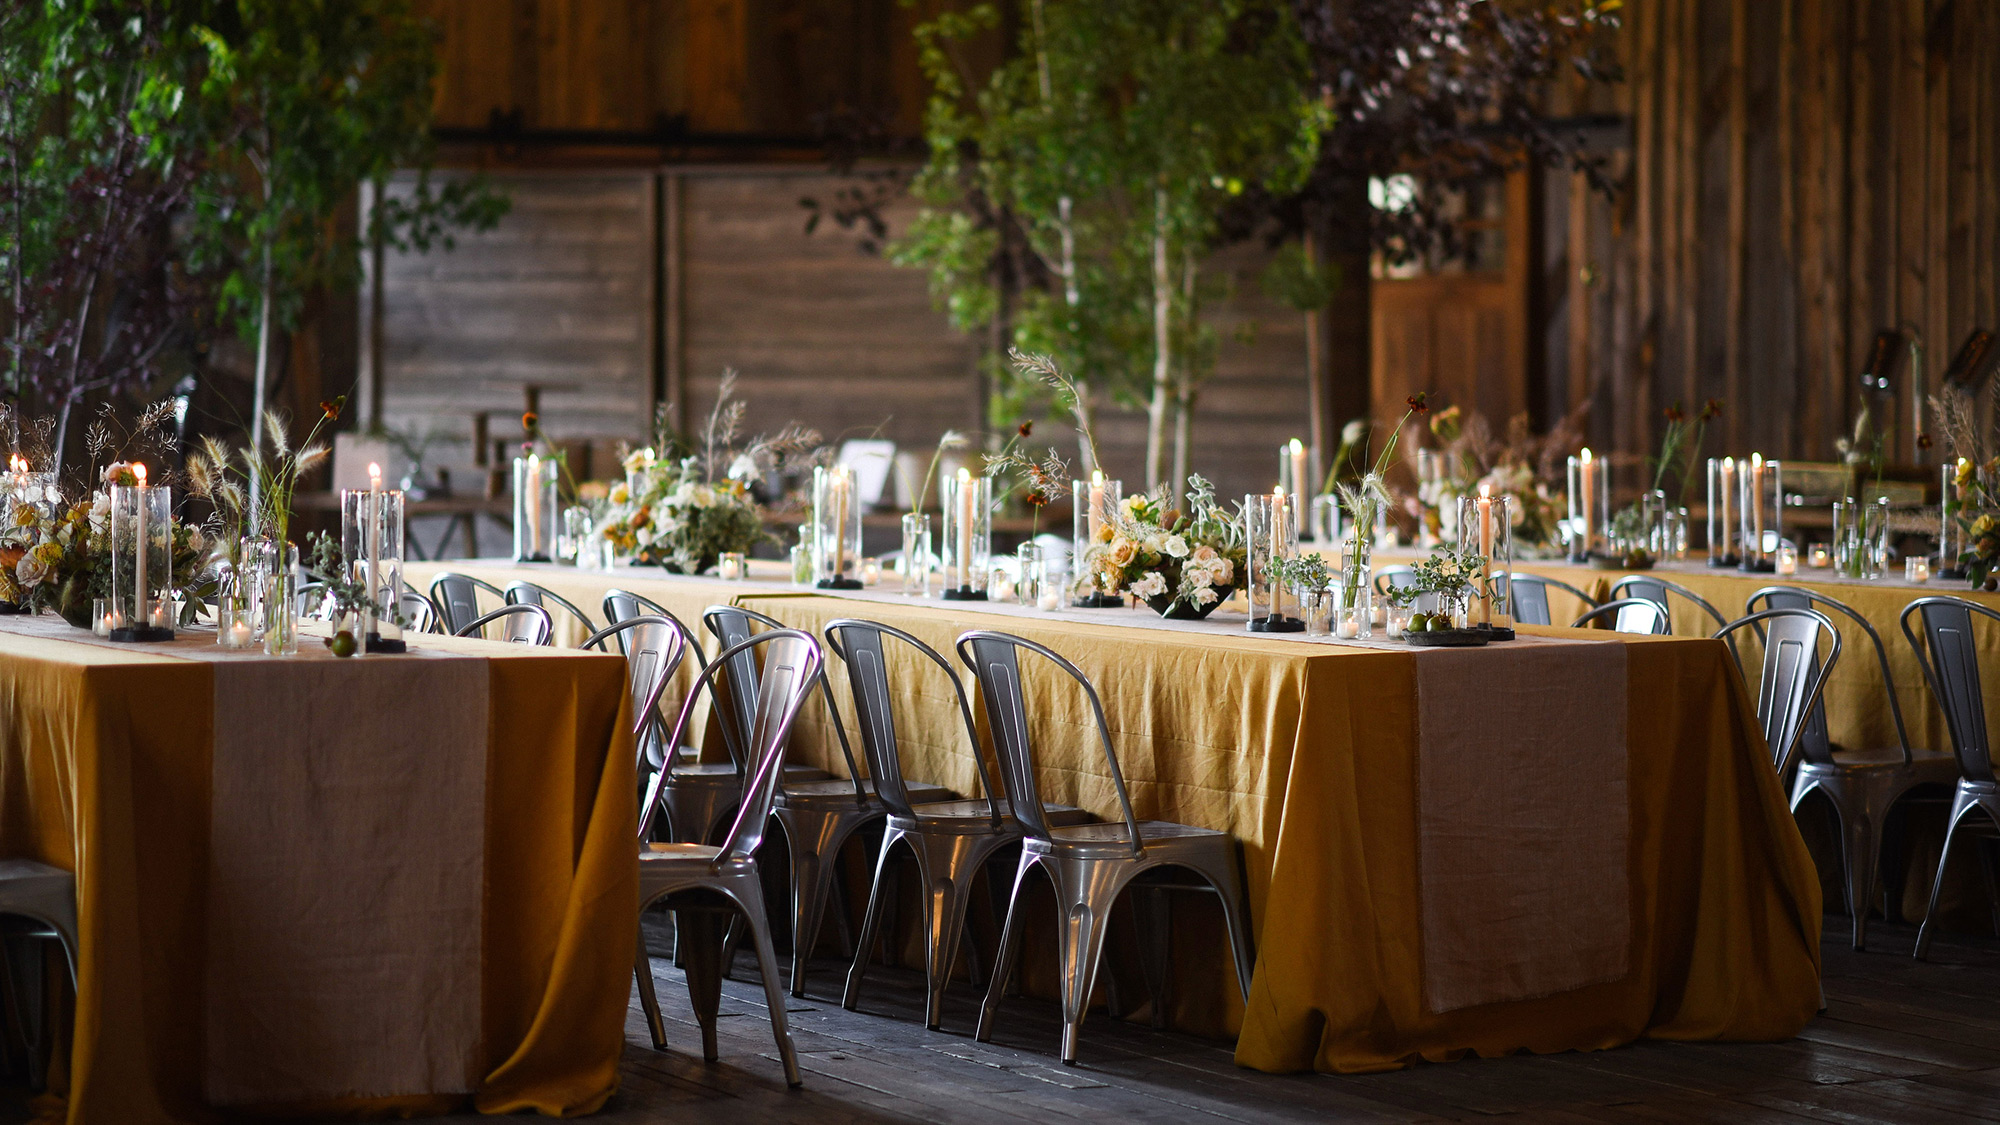 long wedding tables and chairs with flora decorations